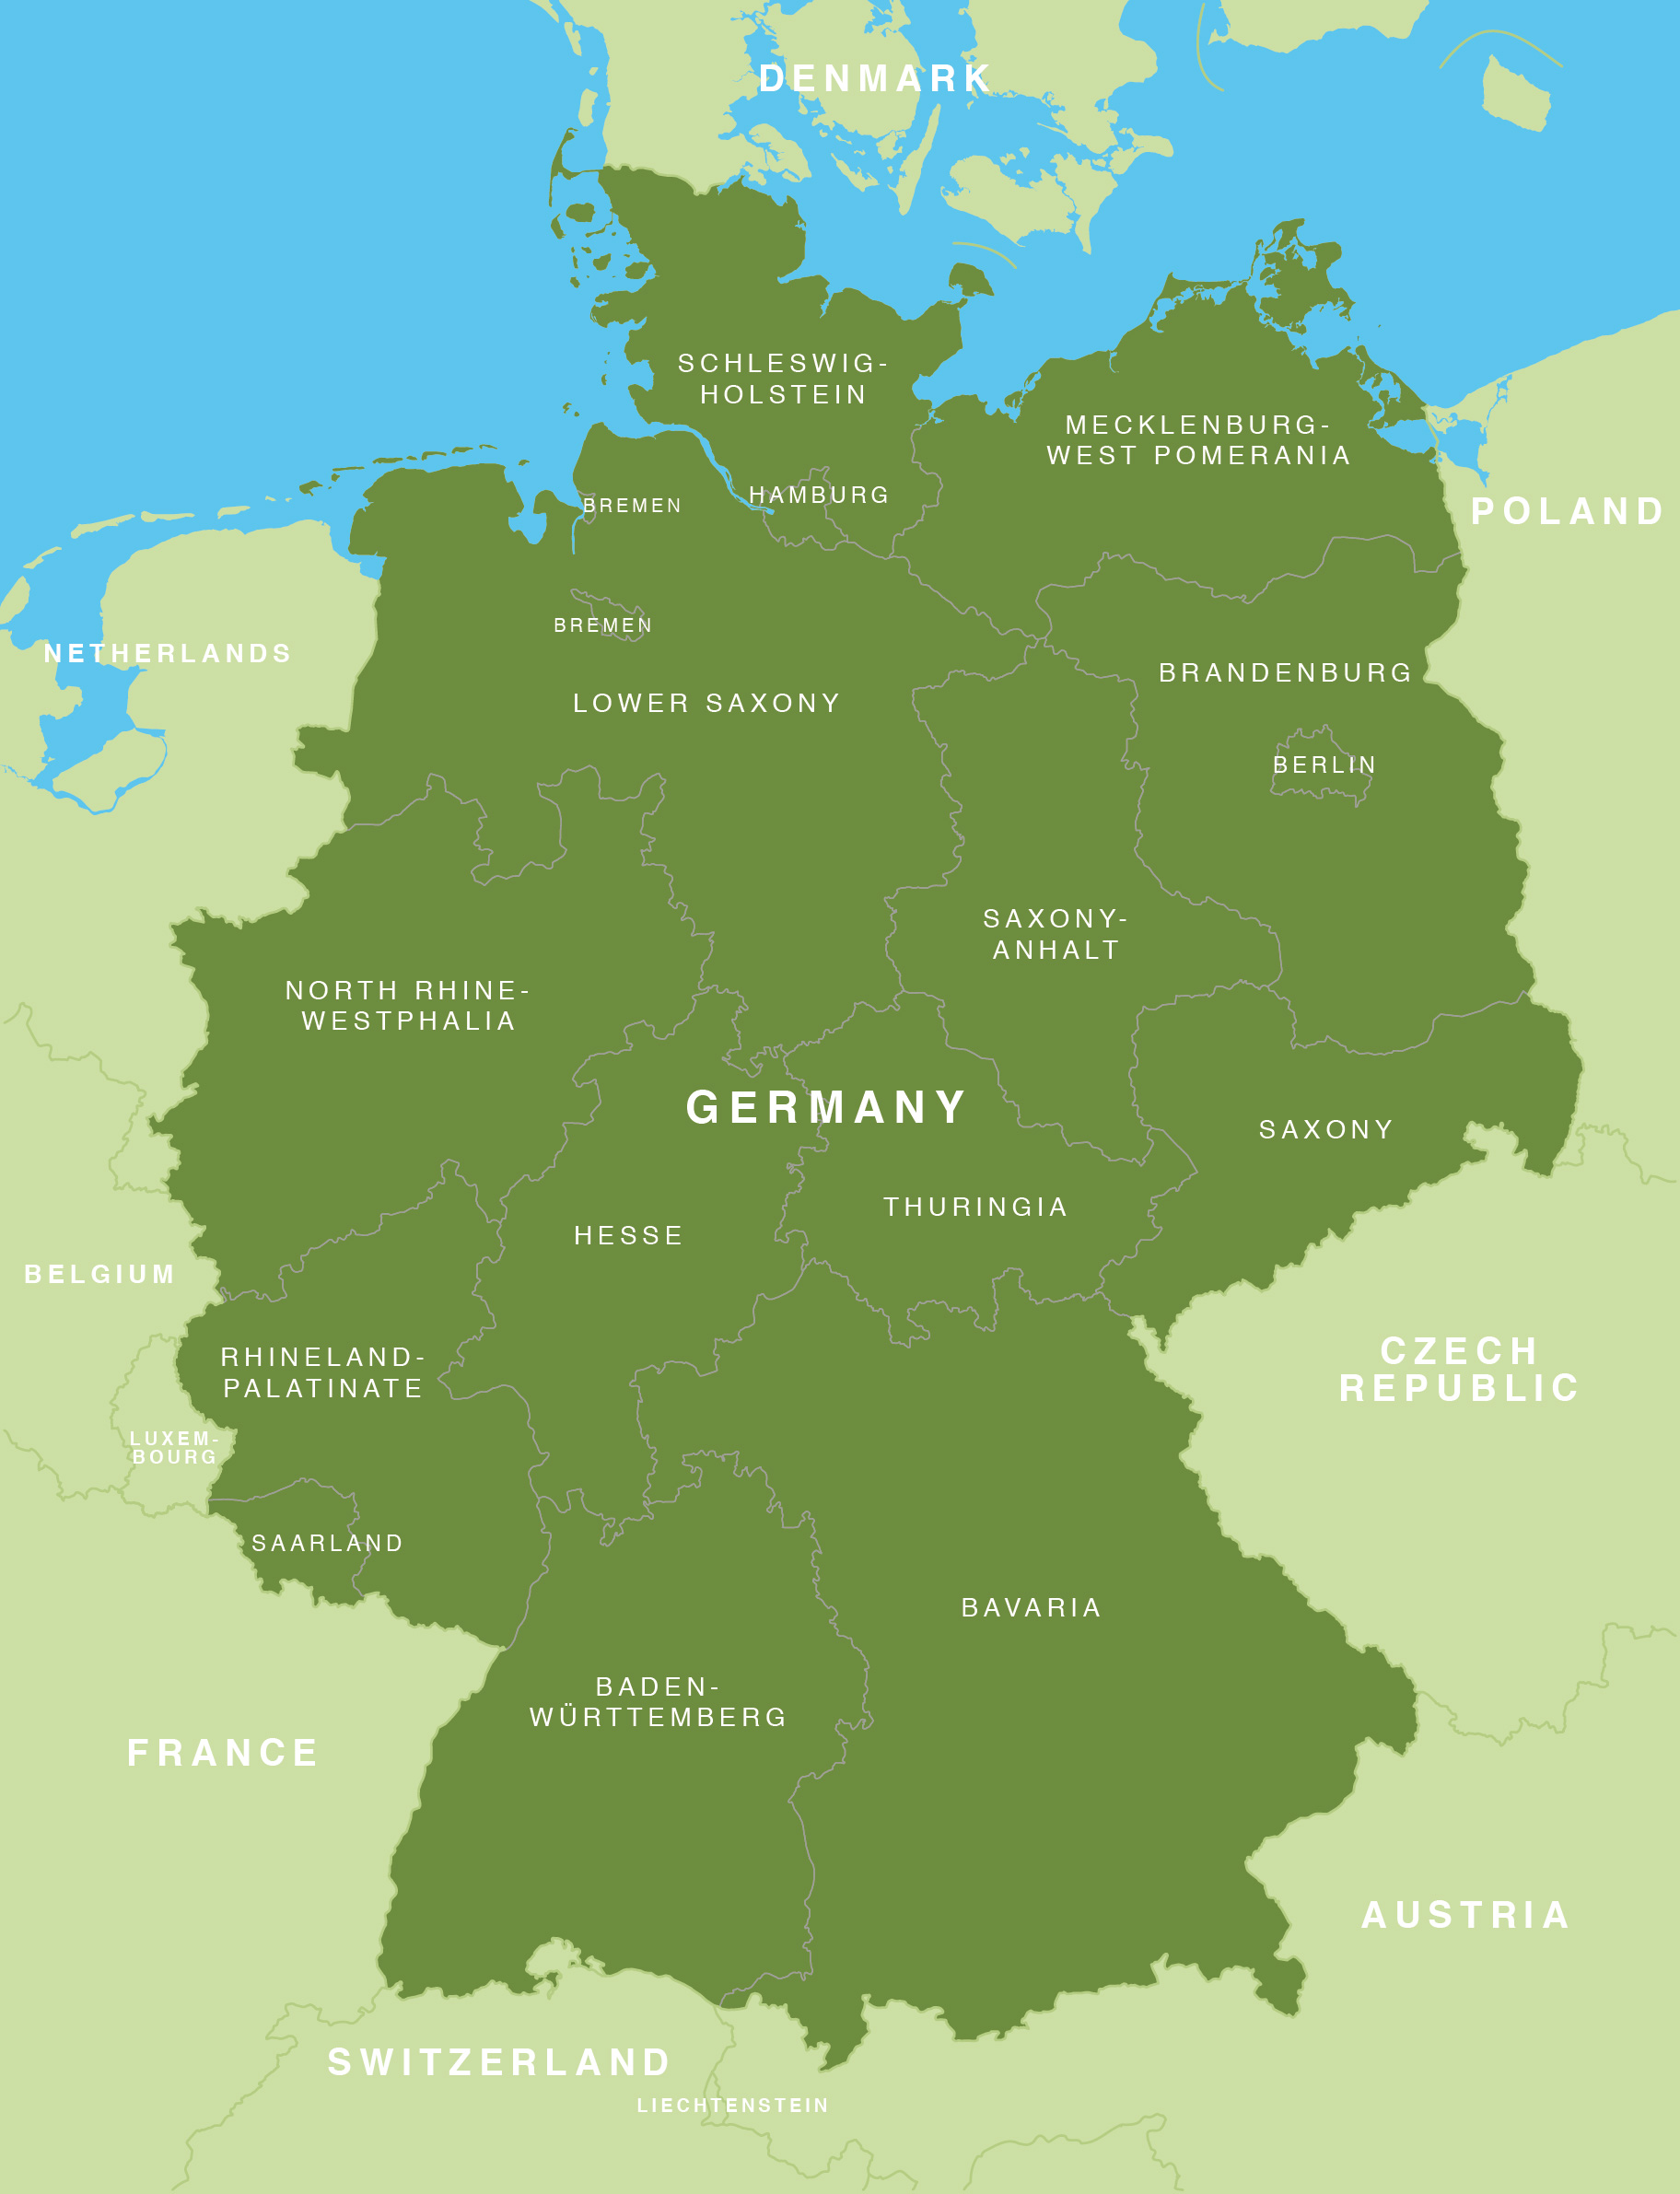 Map of Germany - German states / Bundesländer - Maproom Germany Belgium Map on heligoland germany map, bismarck germany map, saale germany map, greece germany map, hohenzollern germany map, spa germany map, unesco germany map, argentina germany map, finland germany map, east prussia germany map, world war one germany map, ardennes germany map, ghent germany map, alps germany map, frisian islands germany map, algeria germany map, ems germany map, lithuania germany map, romania germany map, soviet germany map,